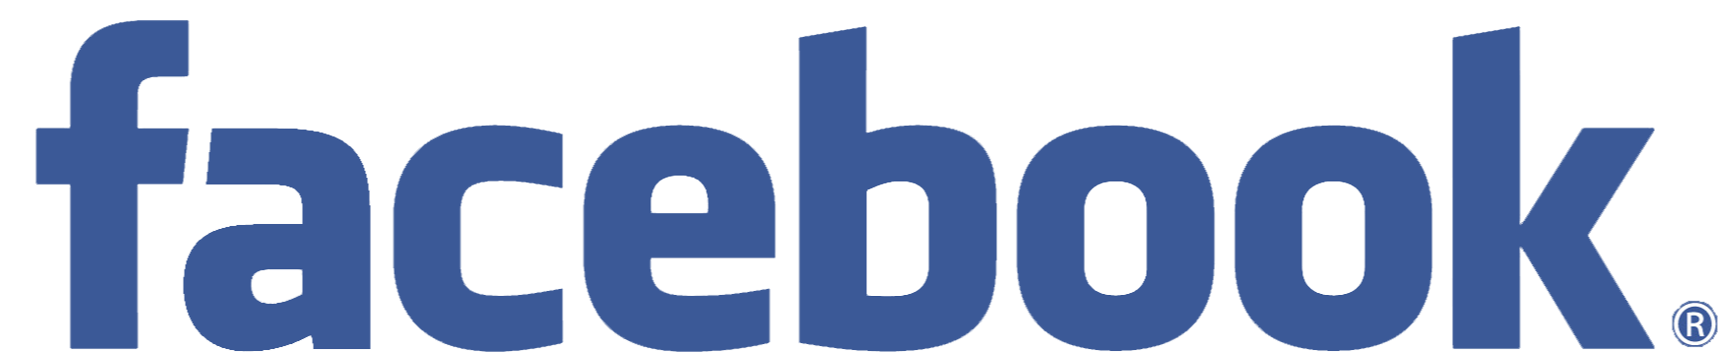 Logo facebook png pictures. Name clipart transparent